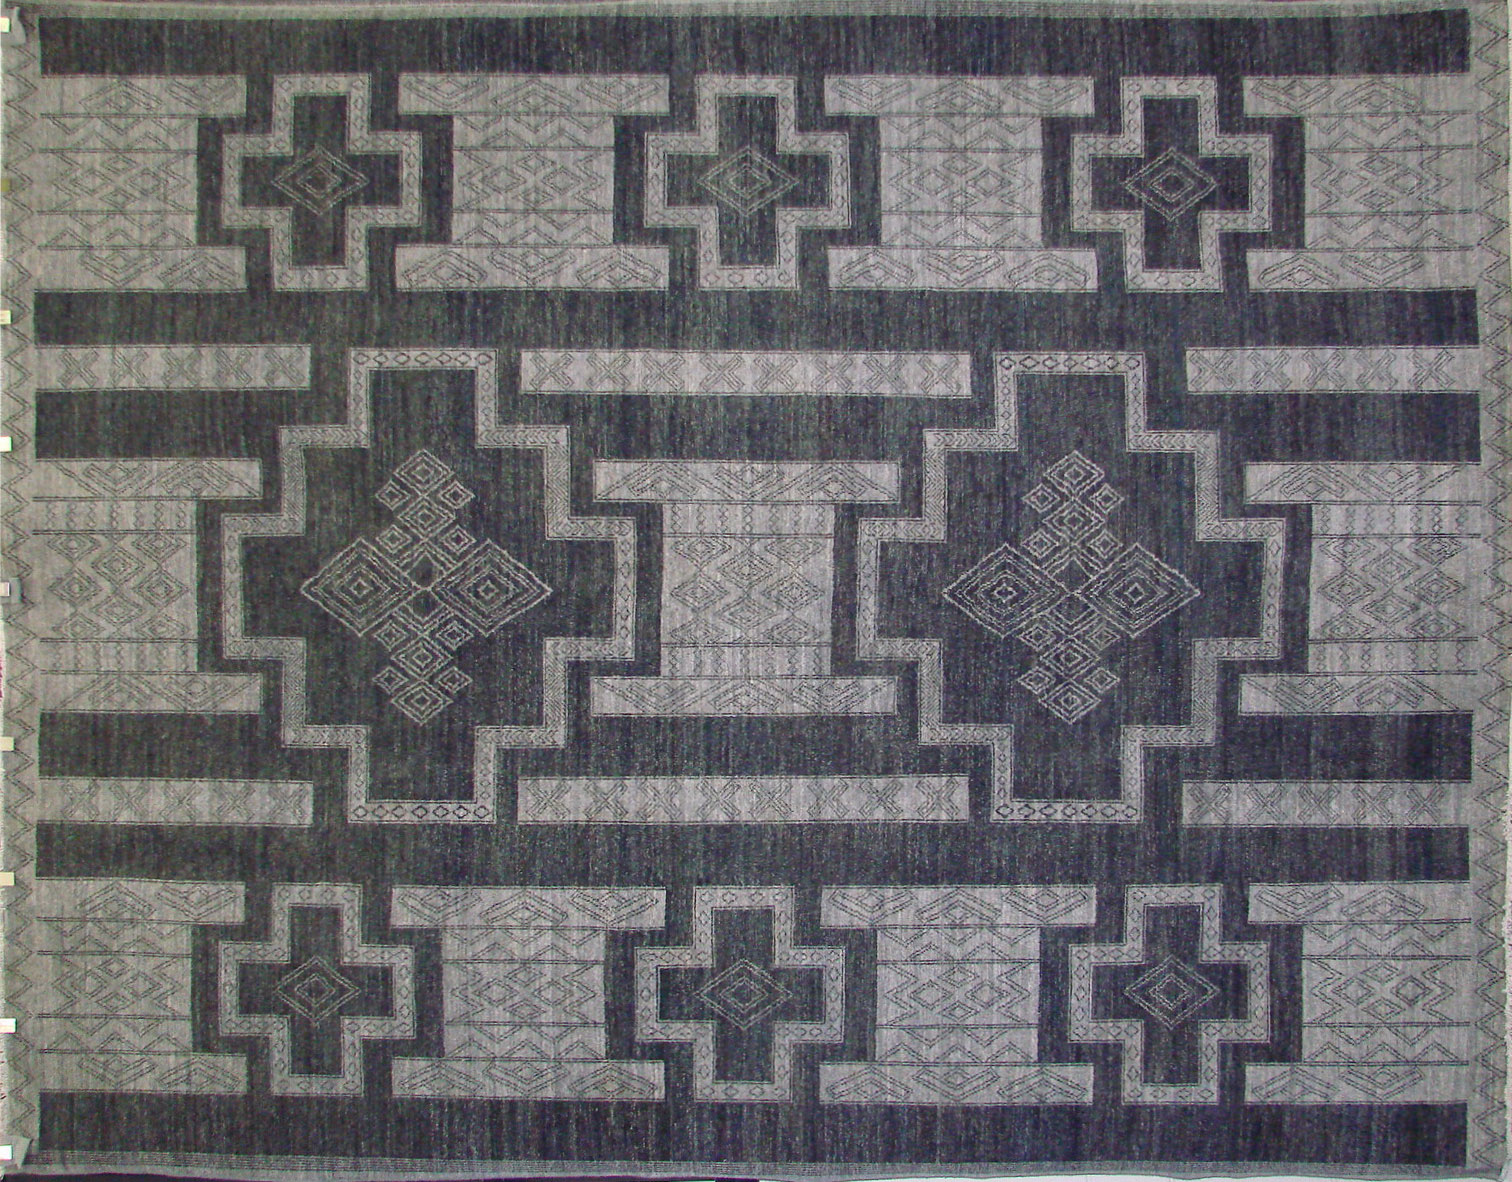 9x12 Contemporary Hand Knotted Wool Area Rug - MR021694